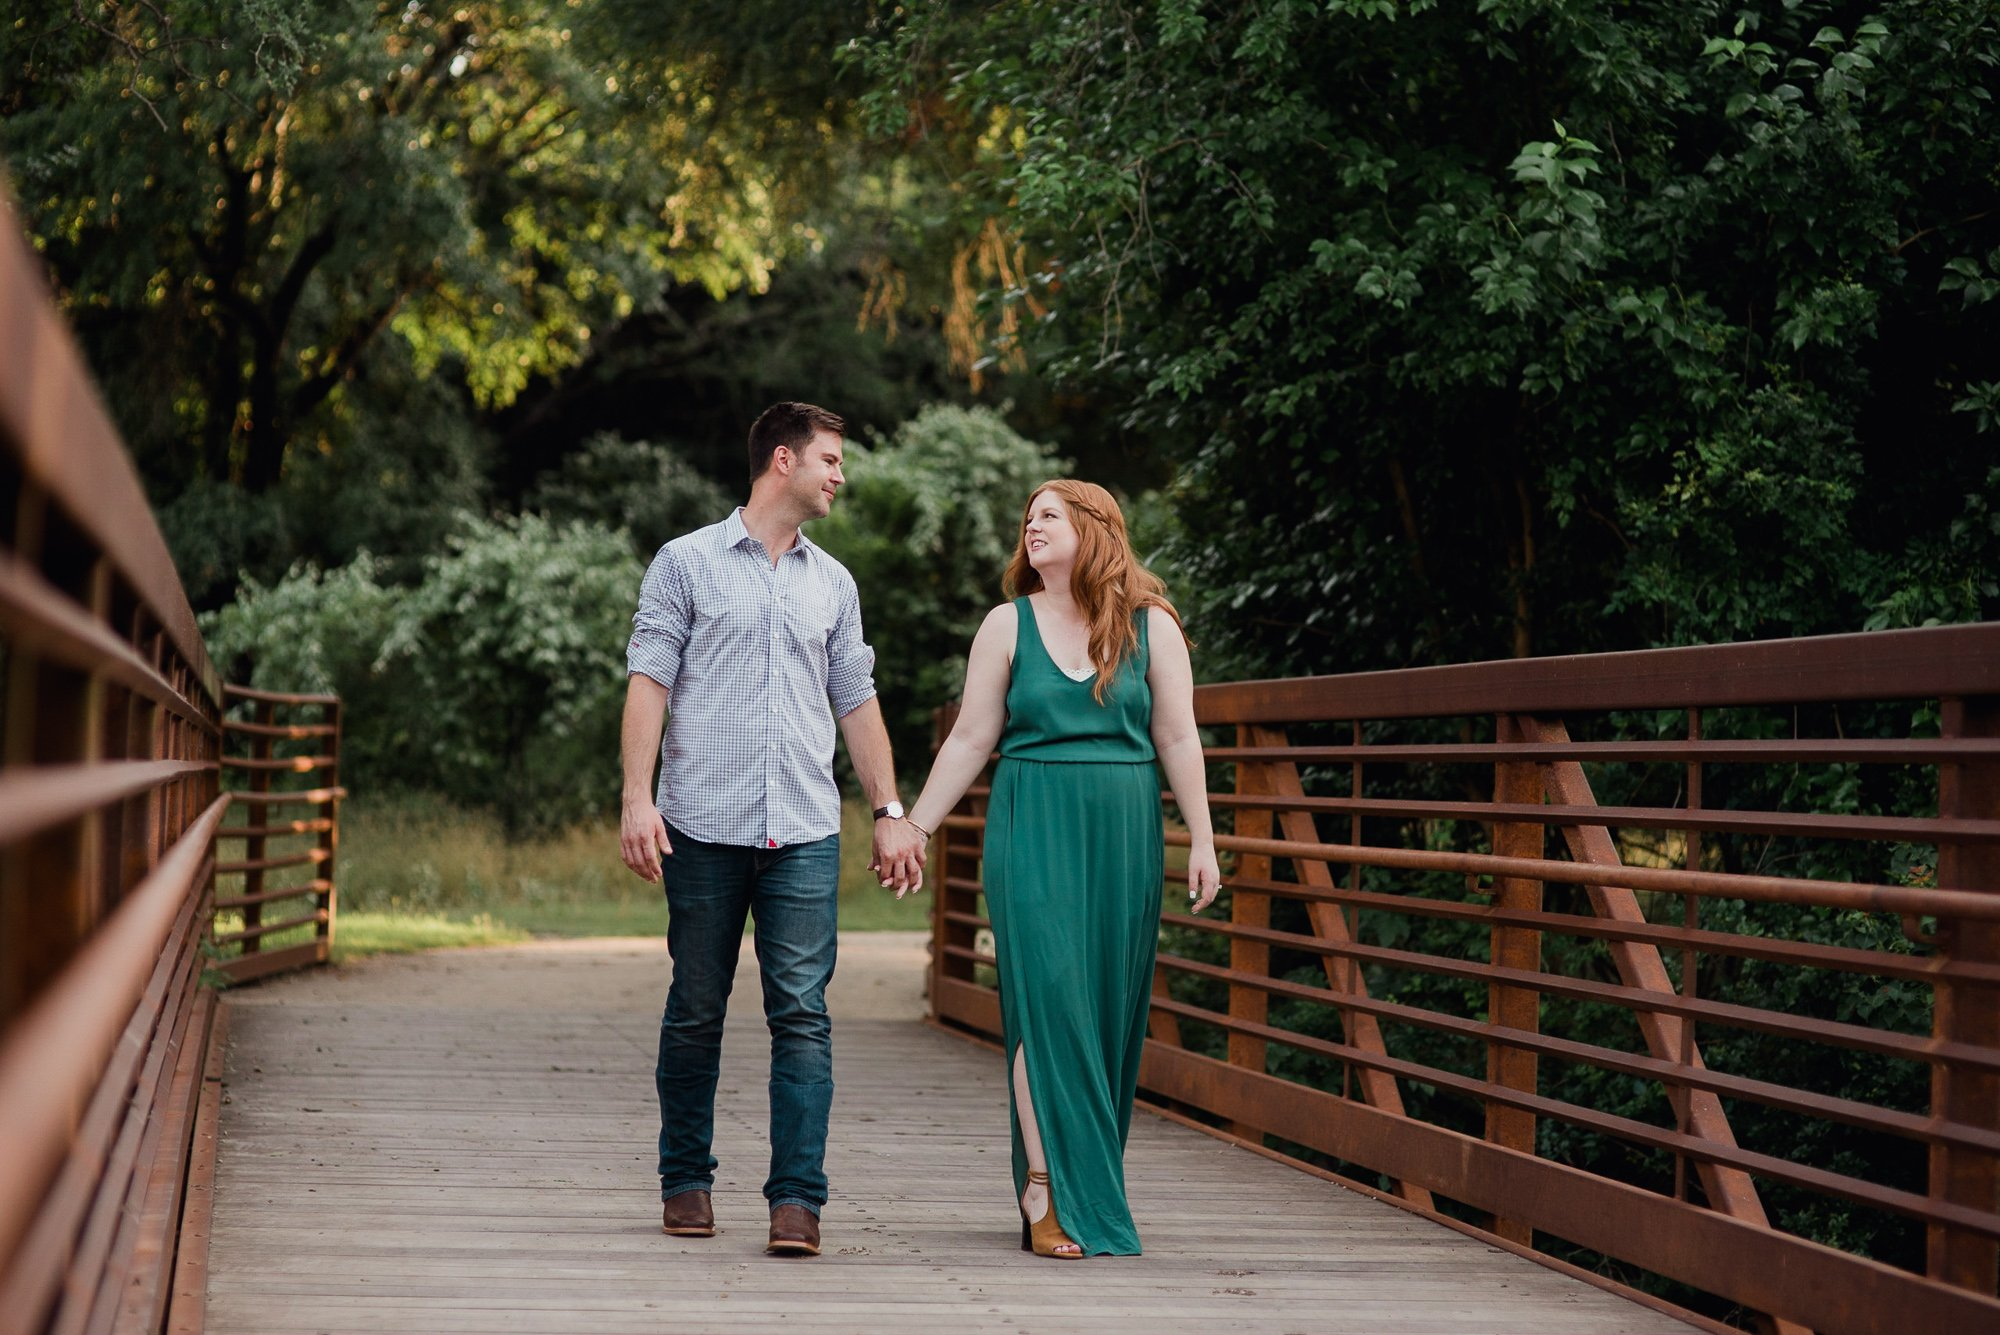 cedar park engagement session, couples session on a bridge in austin, brushy creek park engagement session, summer engagement photos at brushy creek park, park engagement photos in austin texas